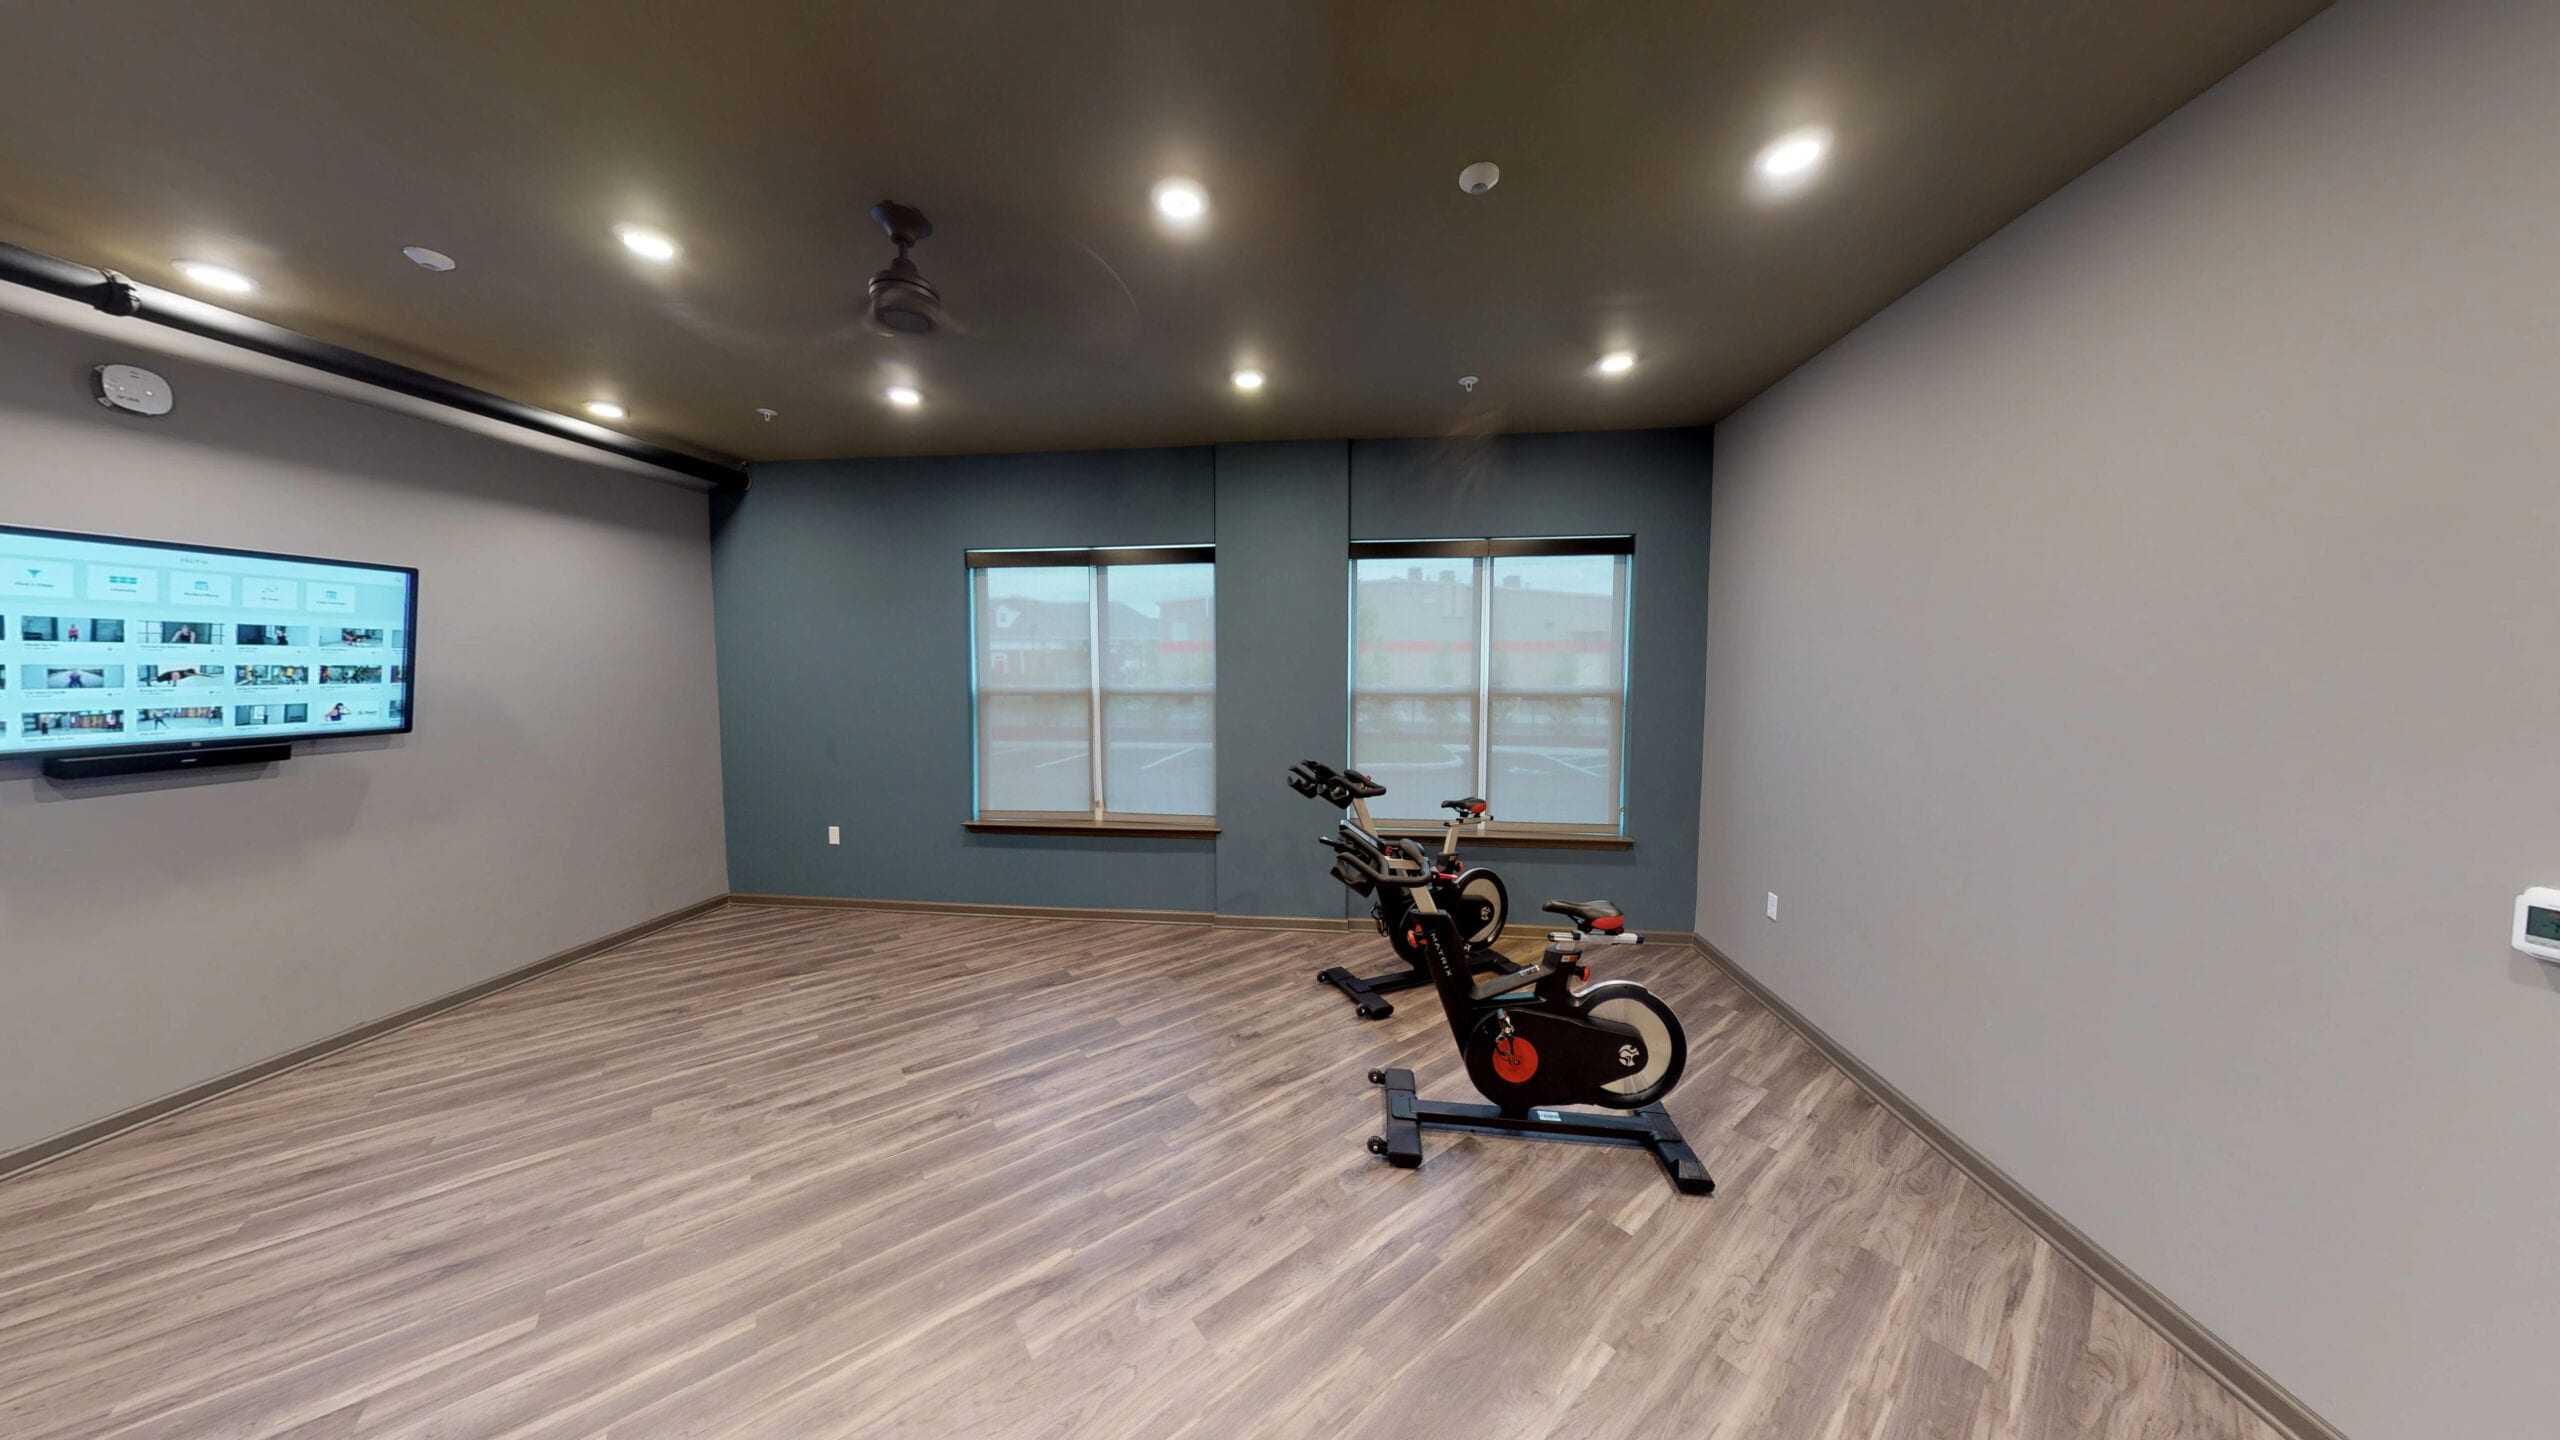 Yoga and Cardio Studio with On-Demand Fitness